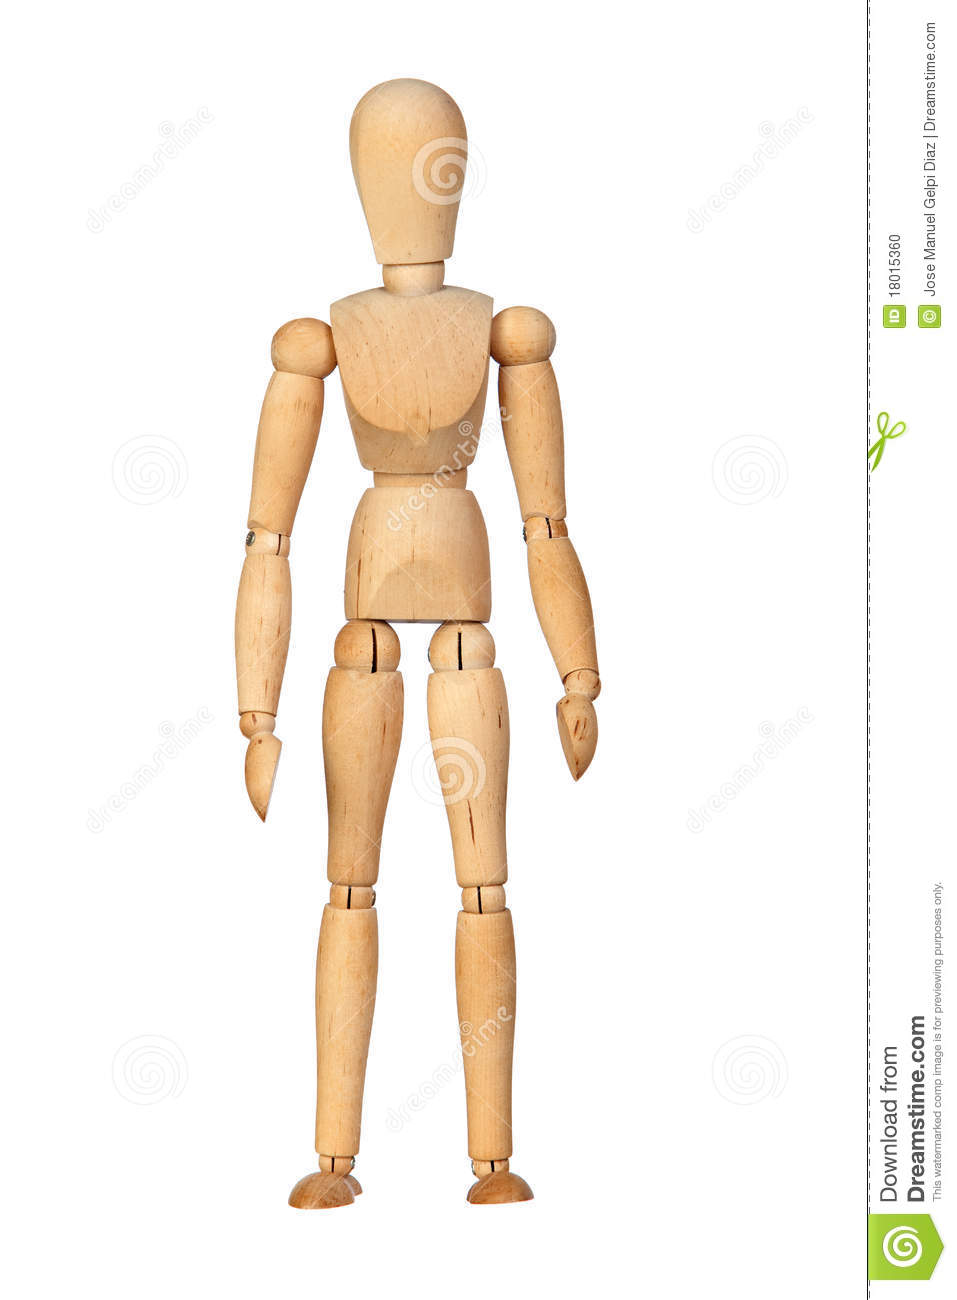 Jointed wooden mannequin